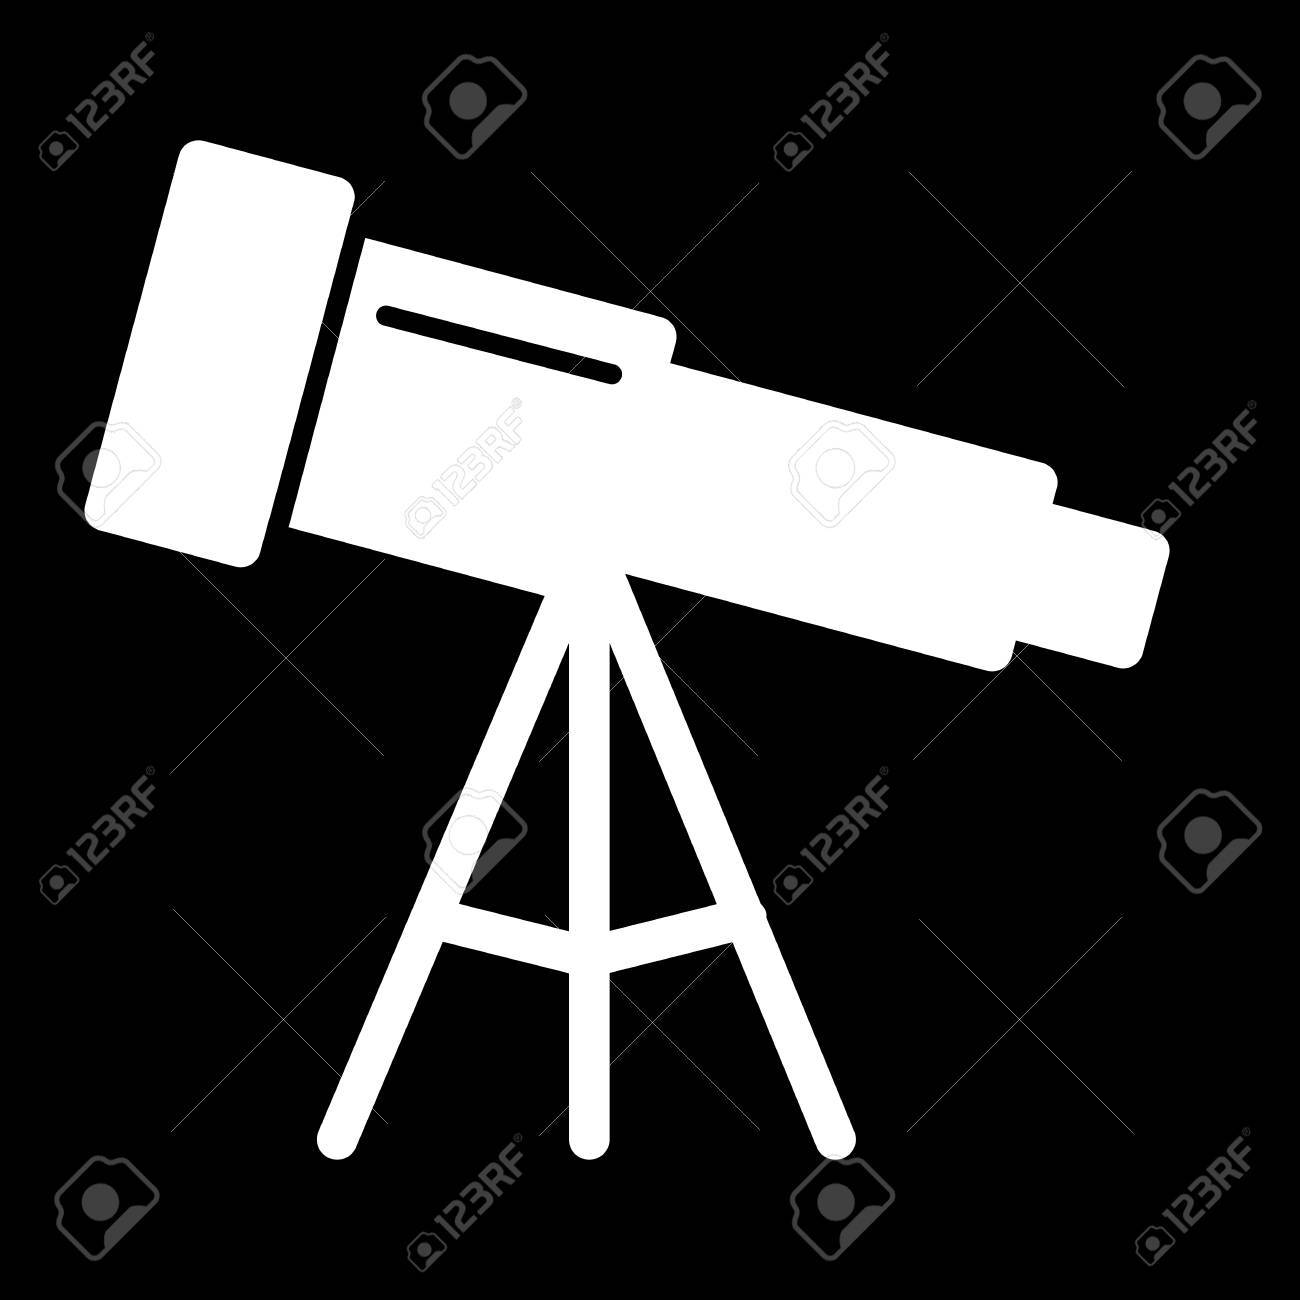 Astronomy Telescope Vector Icon Black And White Illustration Of Solid Linear